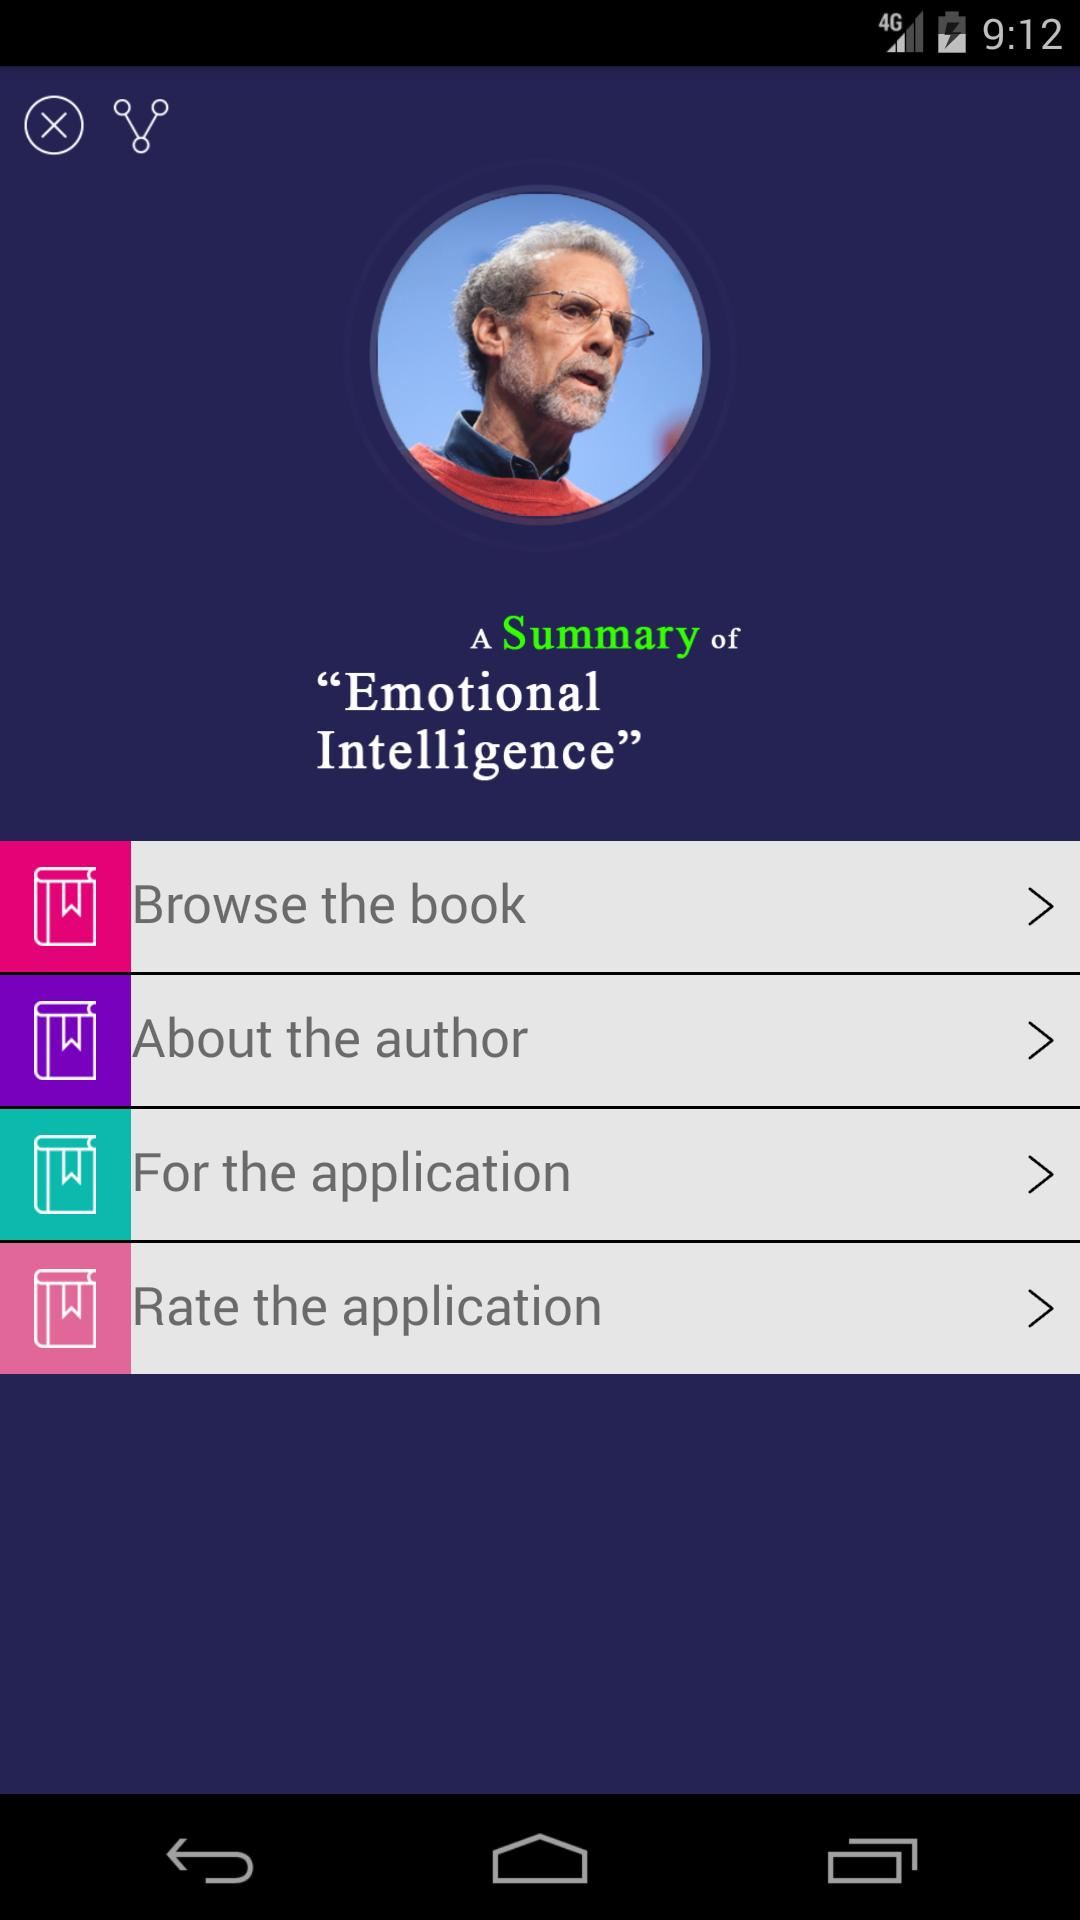 """A Summary of """"Emotional Intelligence"""" for Android - APK Download"""